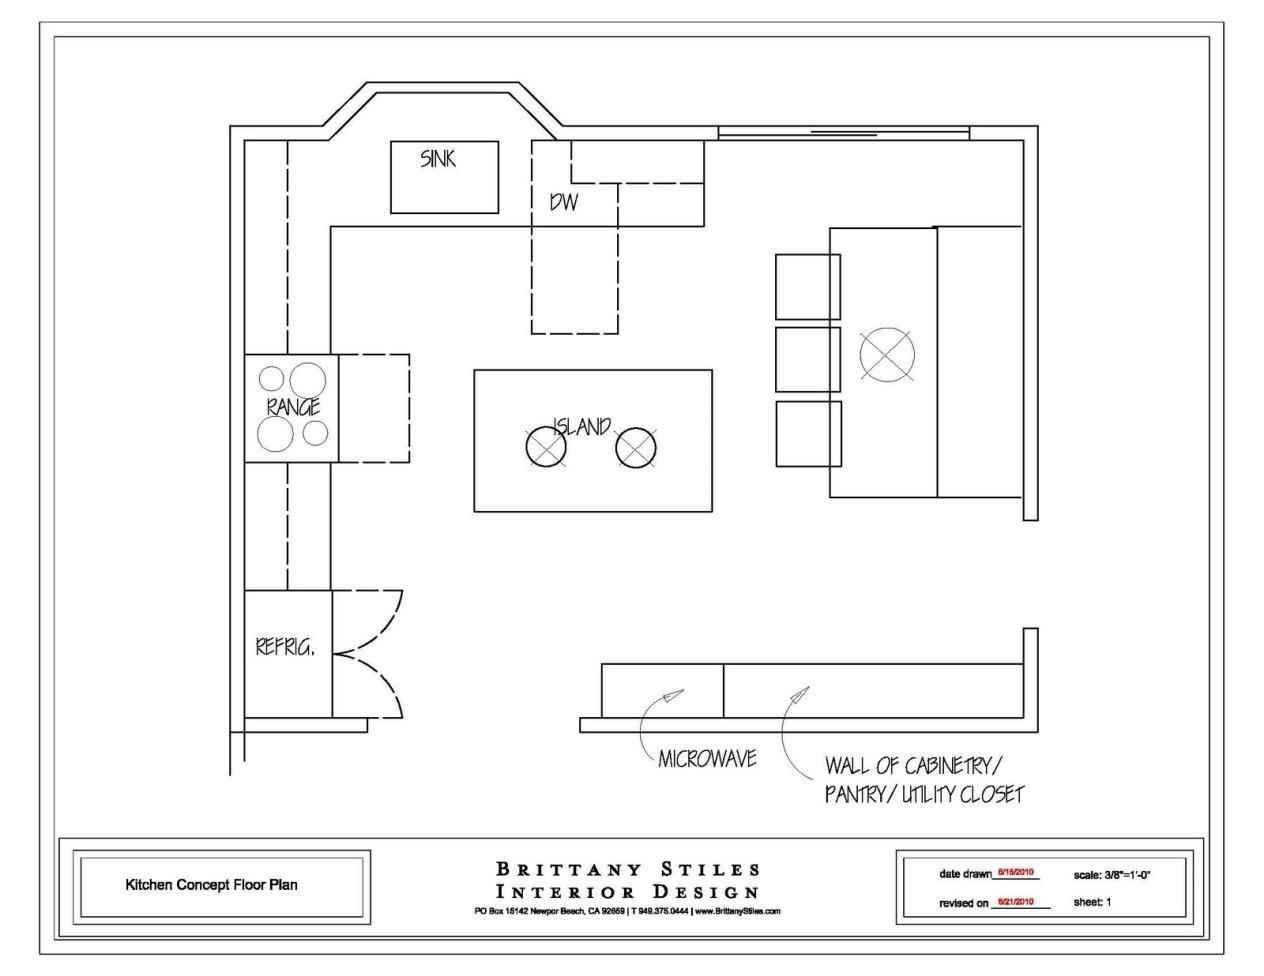 diagram ideas vauxhall meriva b wiring detailed all type kitchen floor plans review small